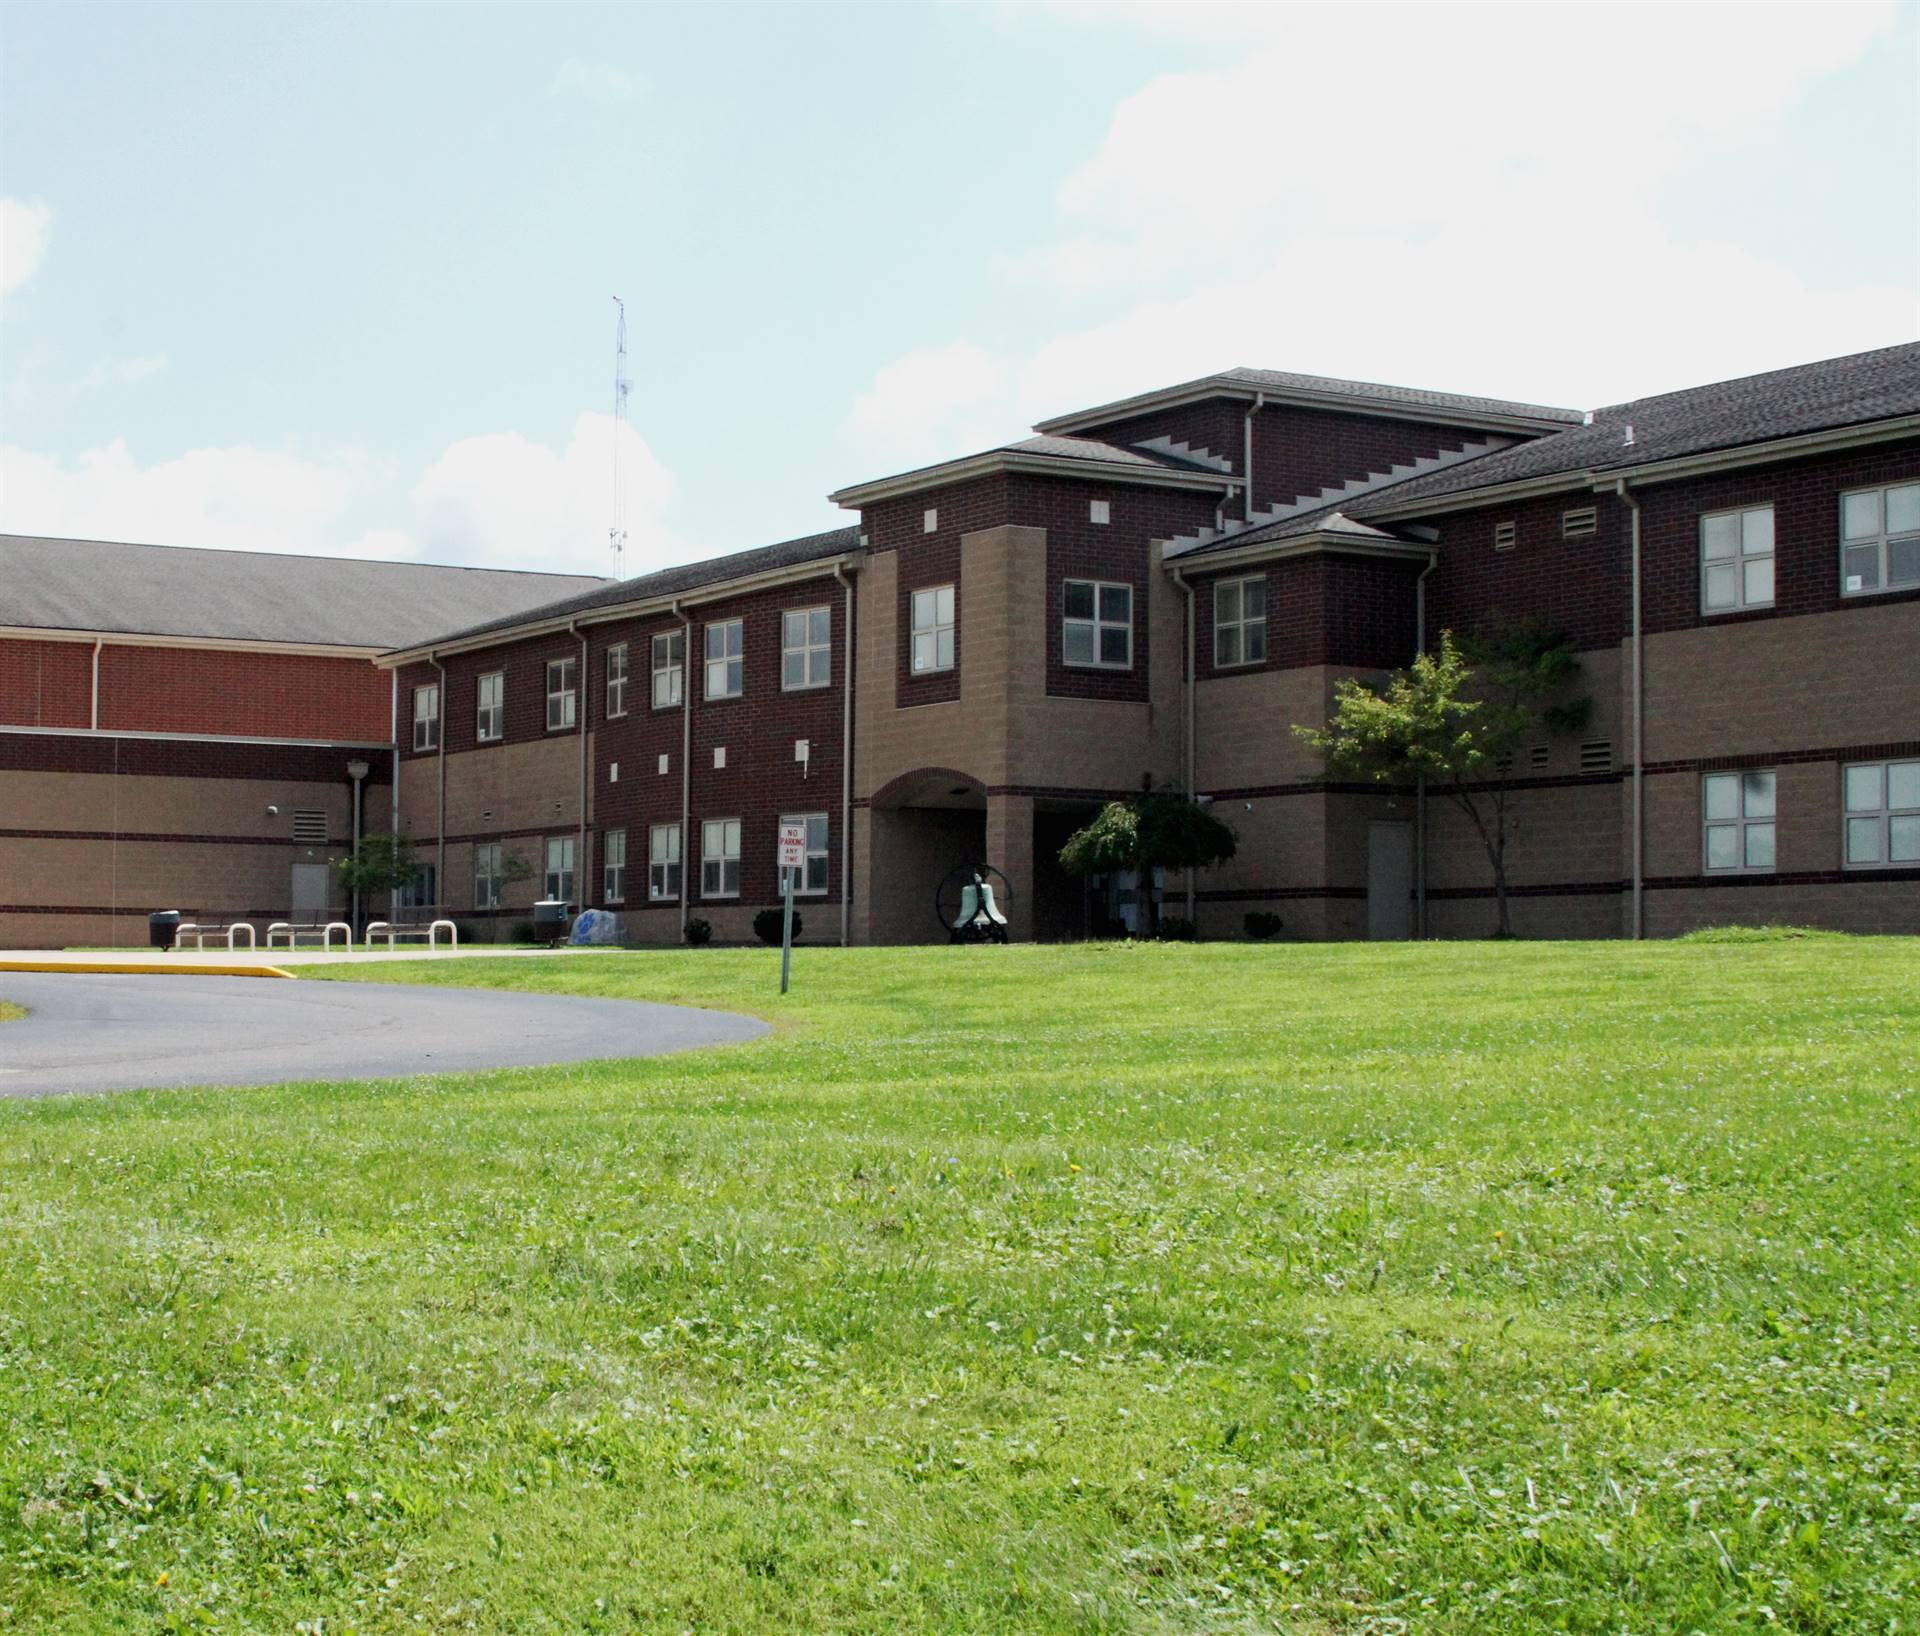 Front of Middle School building